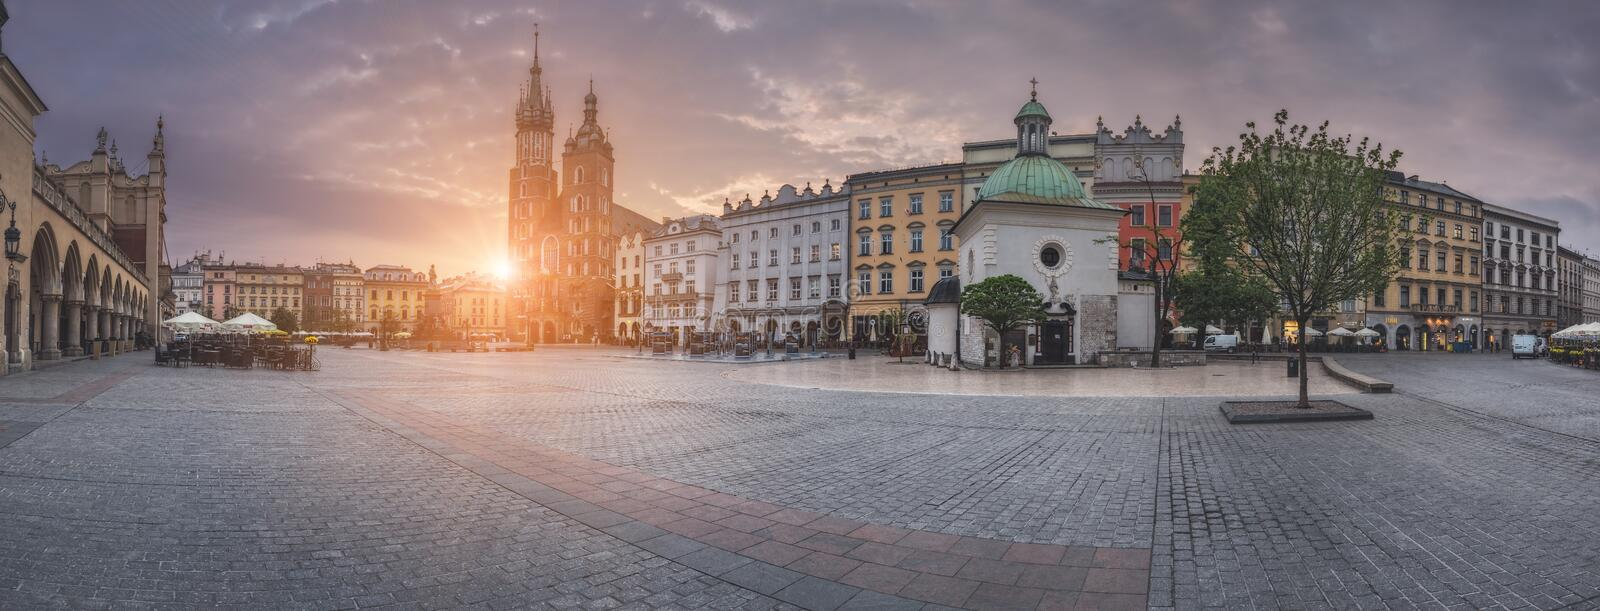 Poland, Krakow - MAY 6: Panorama Market Square at sunrise on May 6, 2015 in Krakow, Poland royalty free stock images